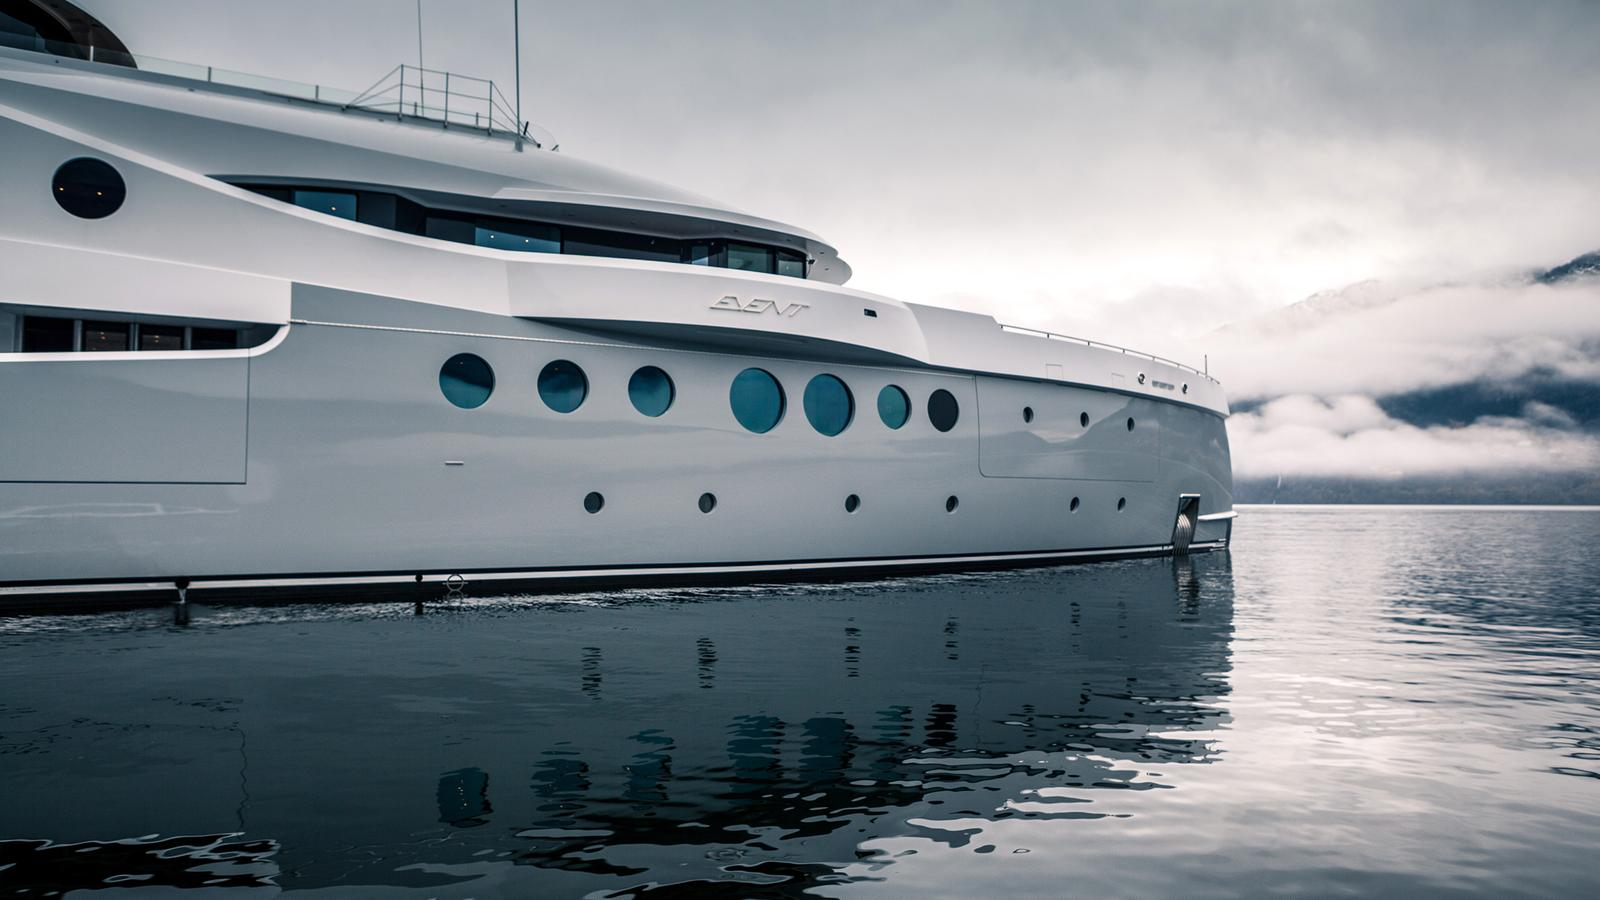 AMELS 199 Limited Edition Yacht - Bow